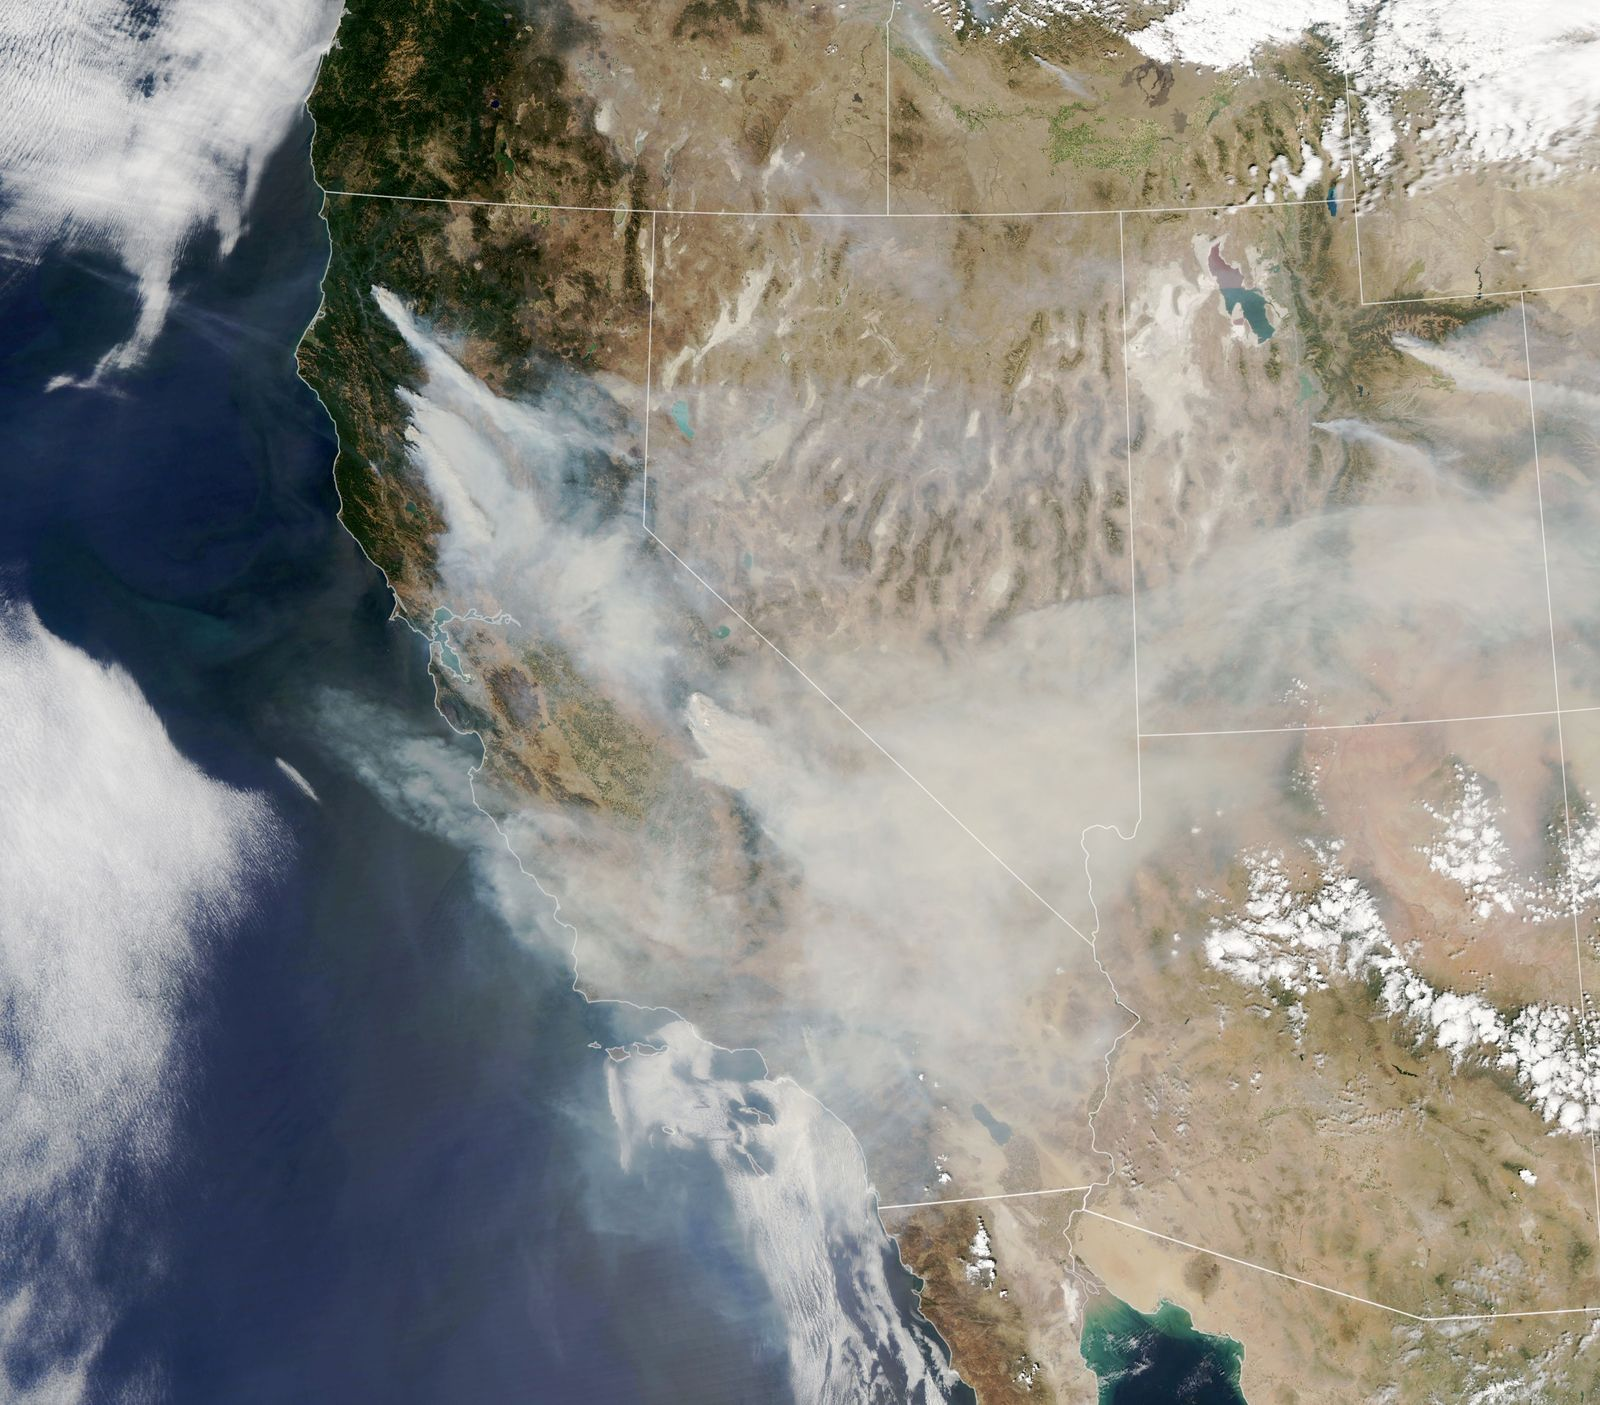 Intense fires raged in several western states over the Labor Day weekend.